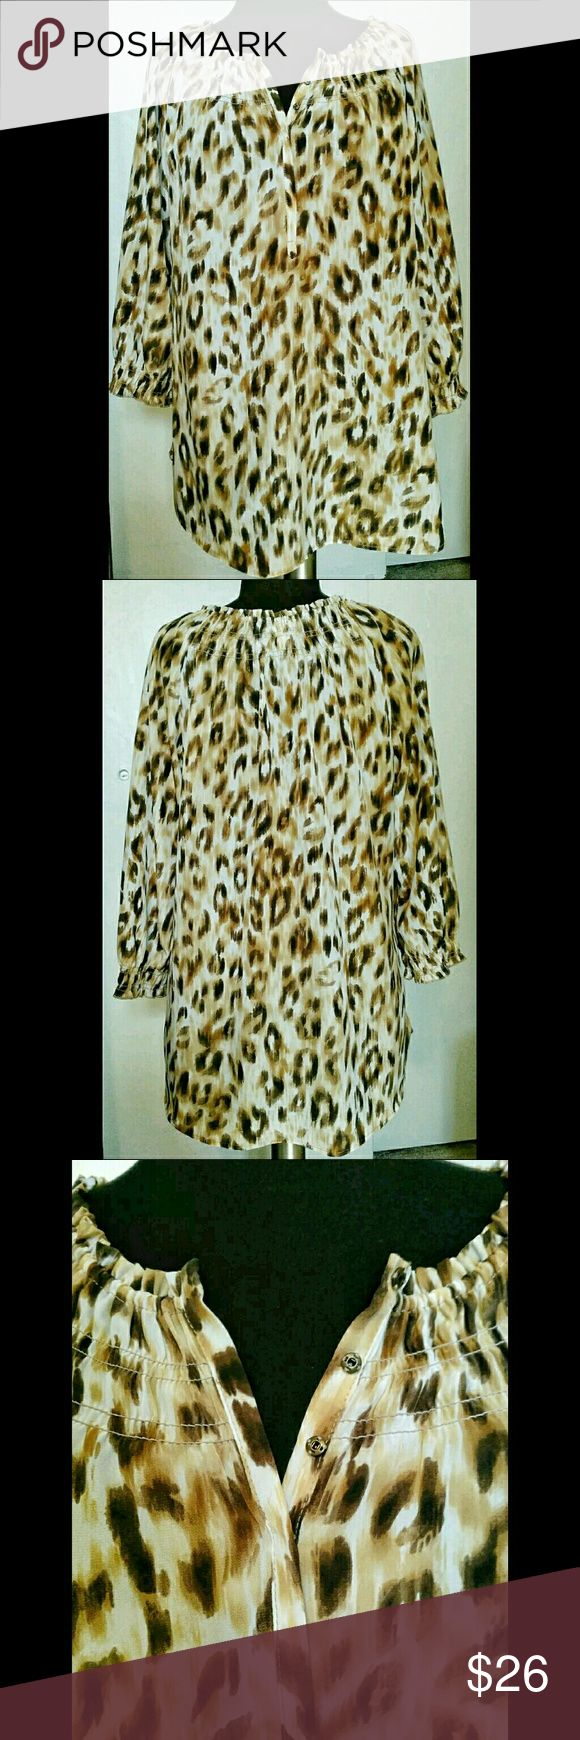 """Leopard Animal Print Tunic Chicos size 1 High quality premium lightweight leopard print tunic blouse   in the colors of brown, beige and cream with 3/4 sleeves.  7 snap closure at front and stretchy elastic at sleeve hem and neckline   BUST= 36 1/2"""" WAIST = 31"""" LENGTH= 29""""  Beautiful! Chico's Tops Tunics"""